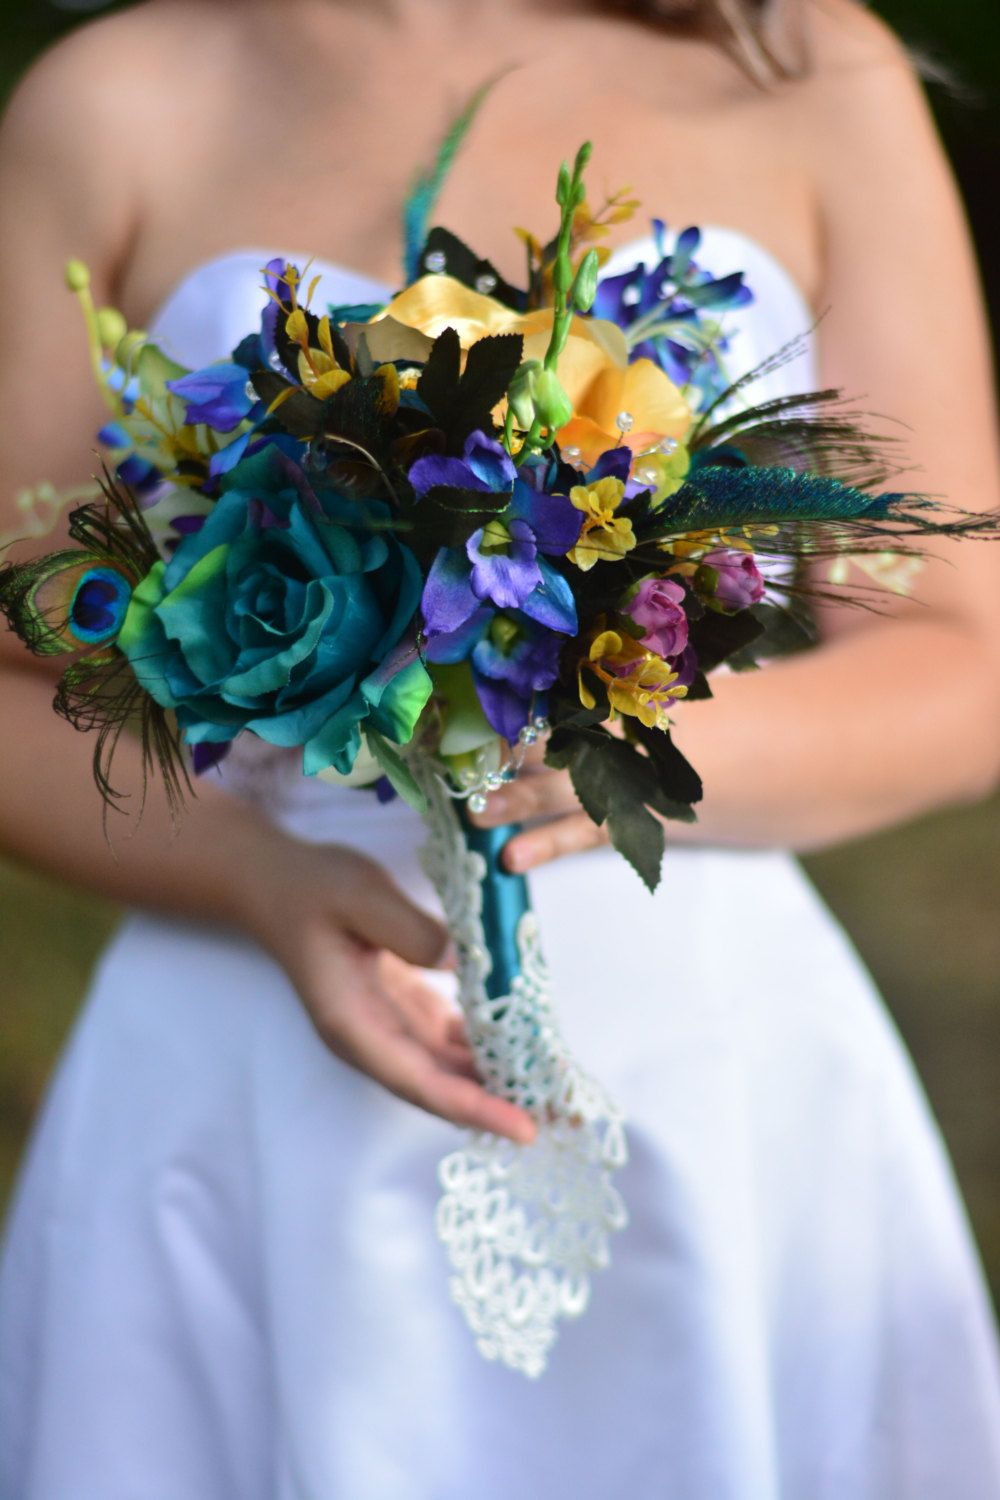 Peacock bouquet ~ Peacock wedding ~ Bridal bouquet ~ Peacock wedding flowers ~ Teal wedding ~ Teal bouquet ~ Feather wedding bouquet by WeddingBellsBelles on Etsy